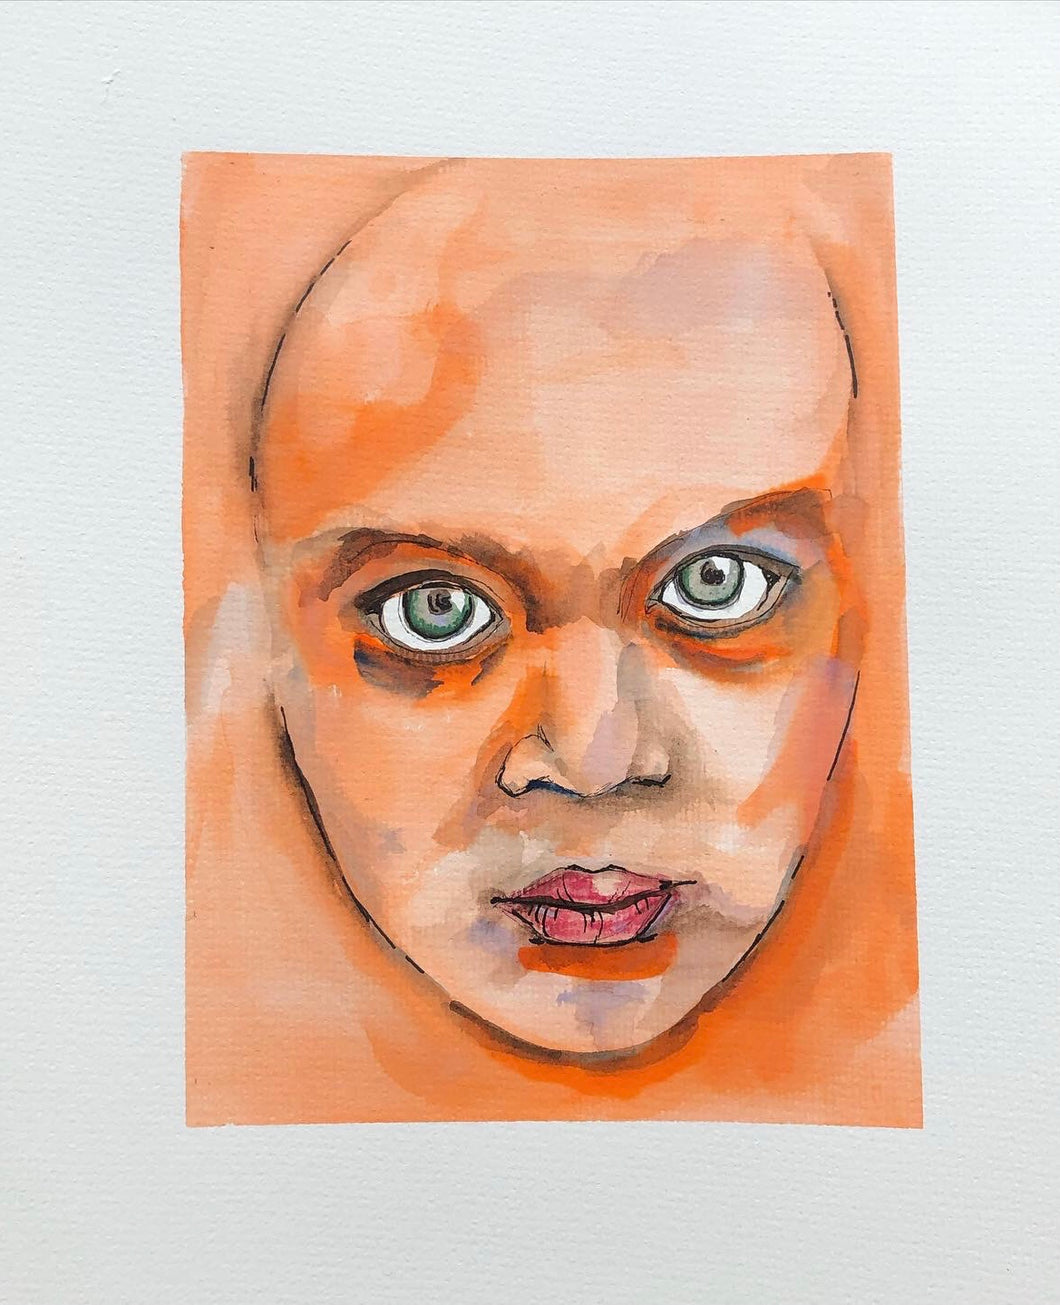 Watercolour original drawing / painting